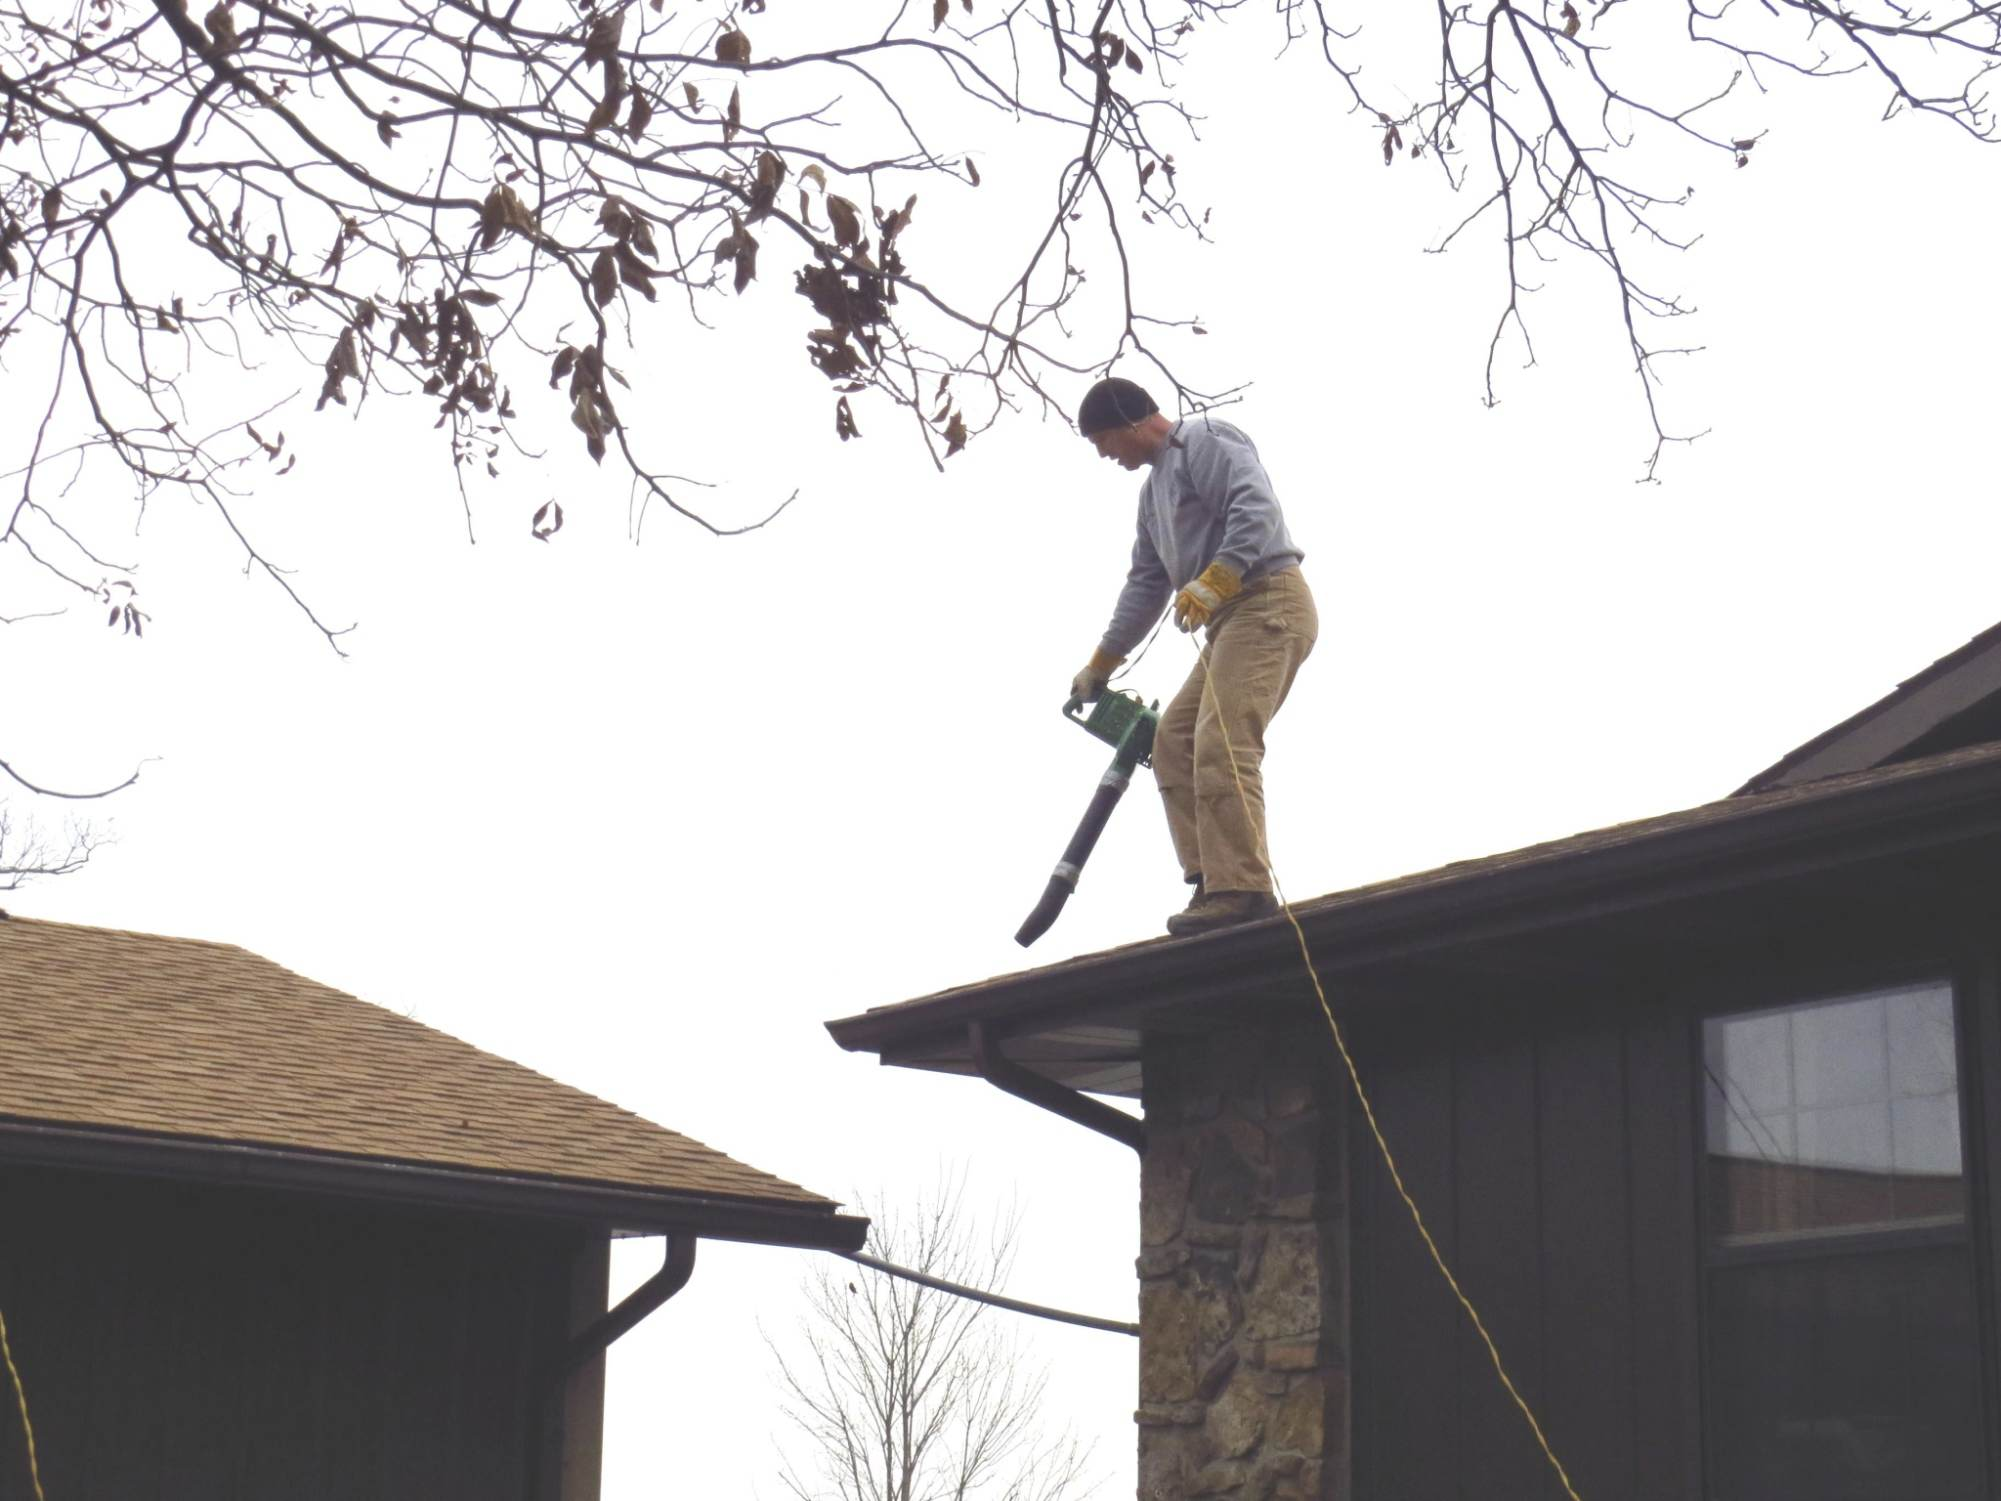 winterizing home to avoid flooding and mold damages